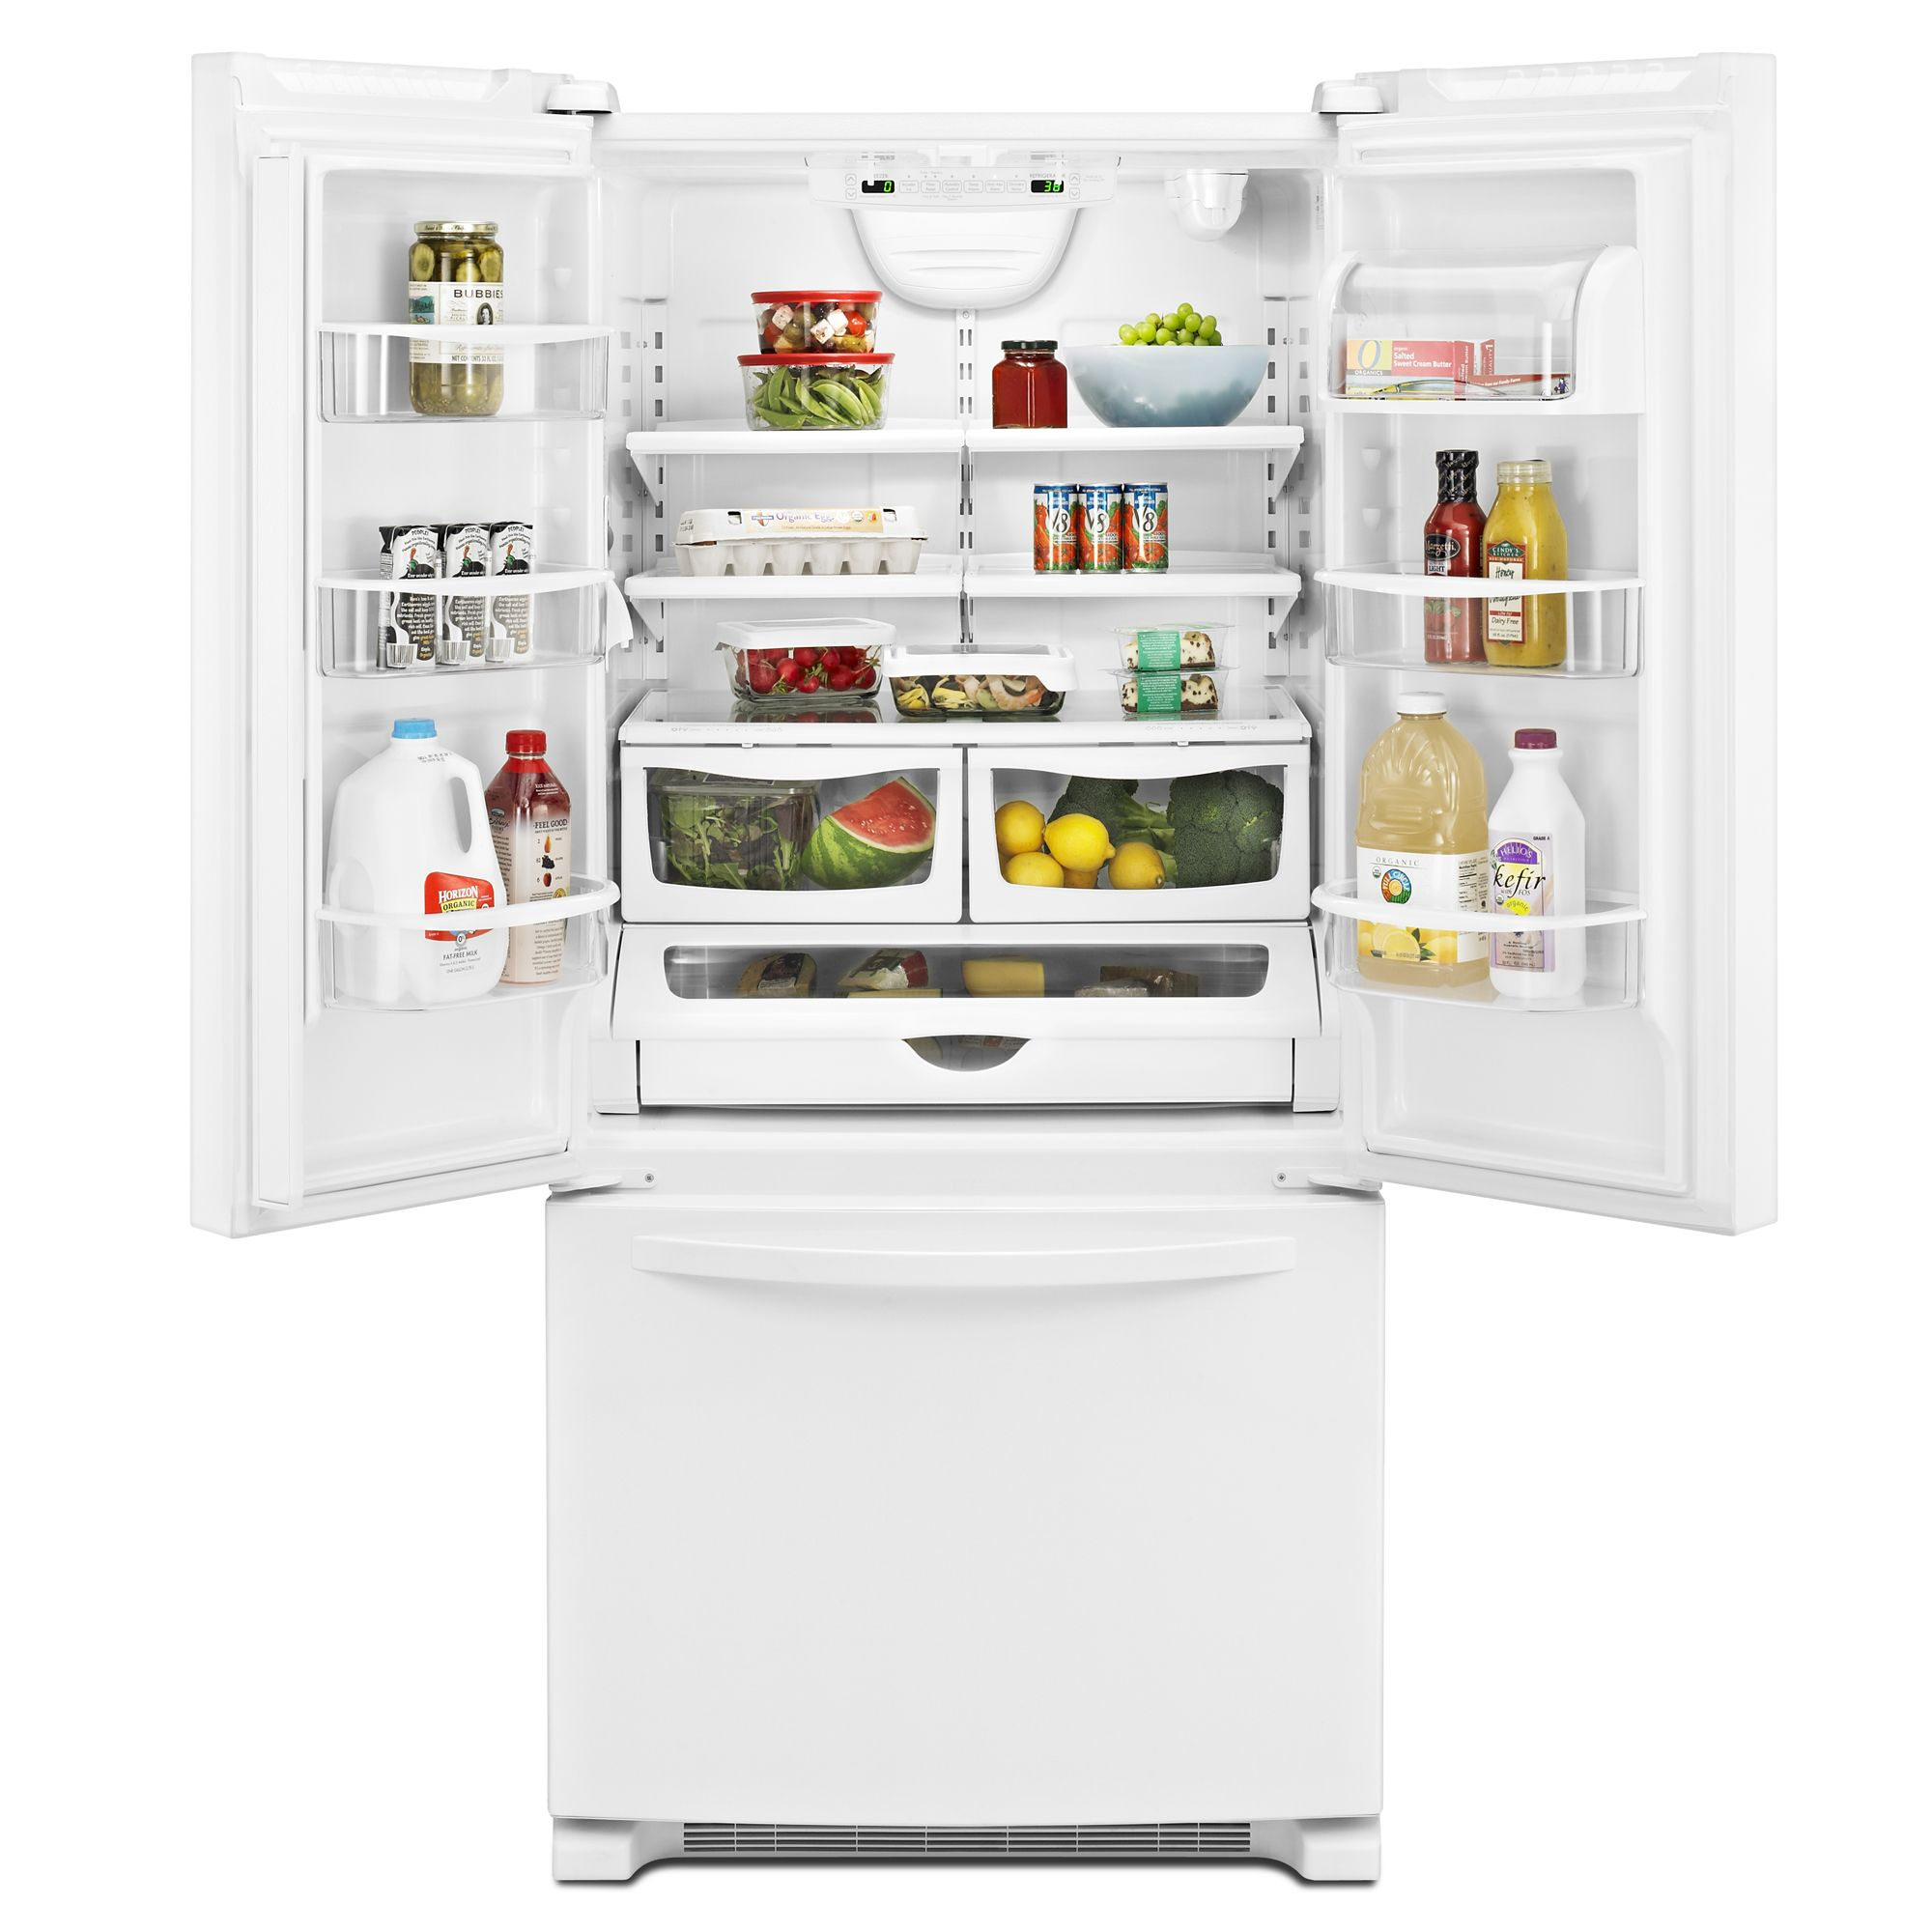 "Kenmore 72002 22 cu. ft. 33"" French-Door Bottom-Freezer Refrigerator w/Internal Dispenser - White"